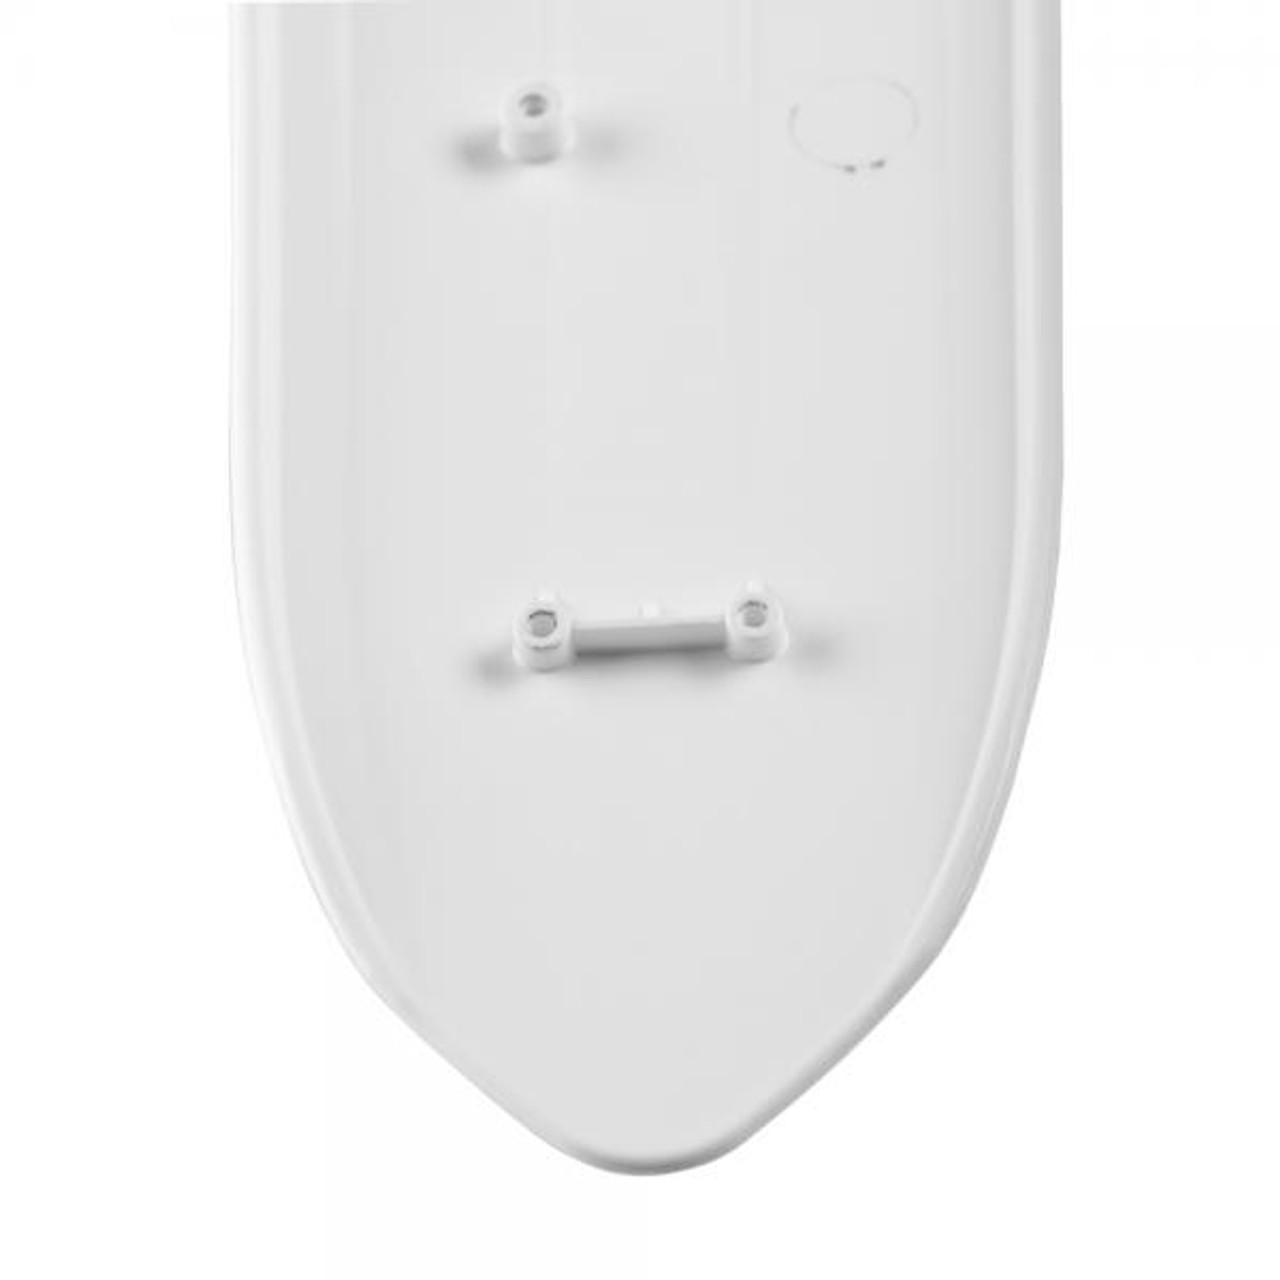 Rear mudguard from Jitsie for Gas Gas Pro/Racing/Raga/Factory 11-18, white